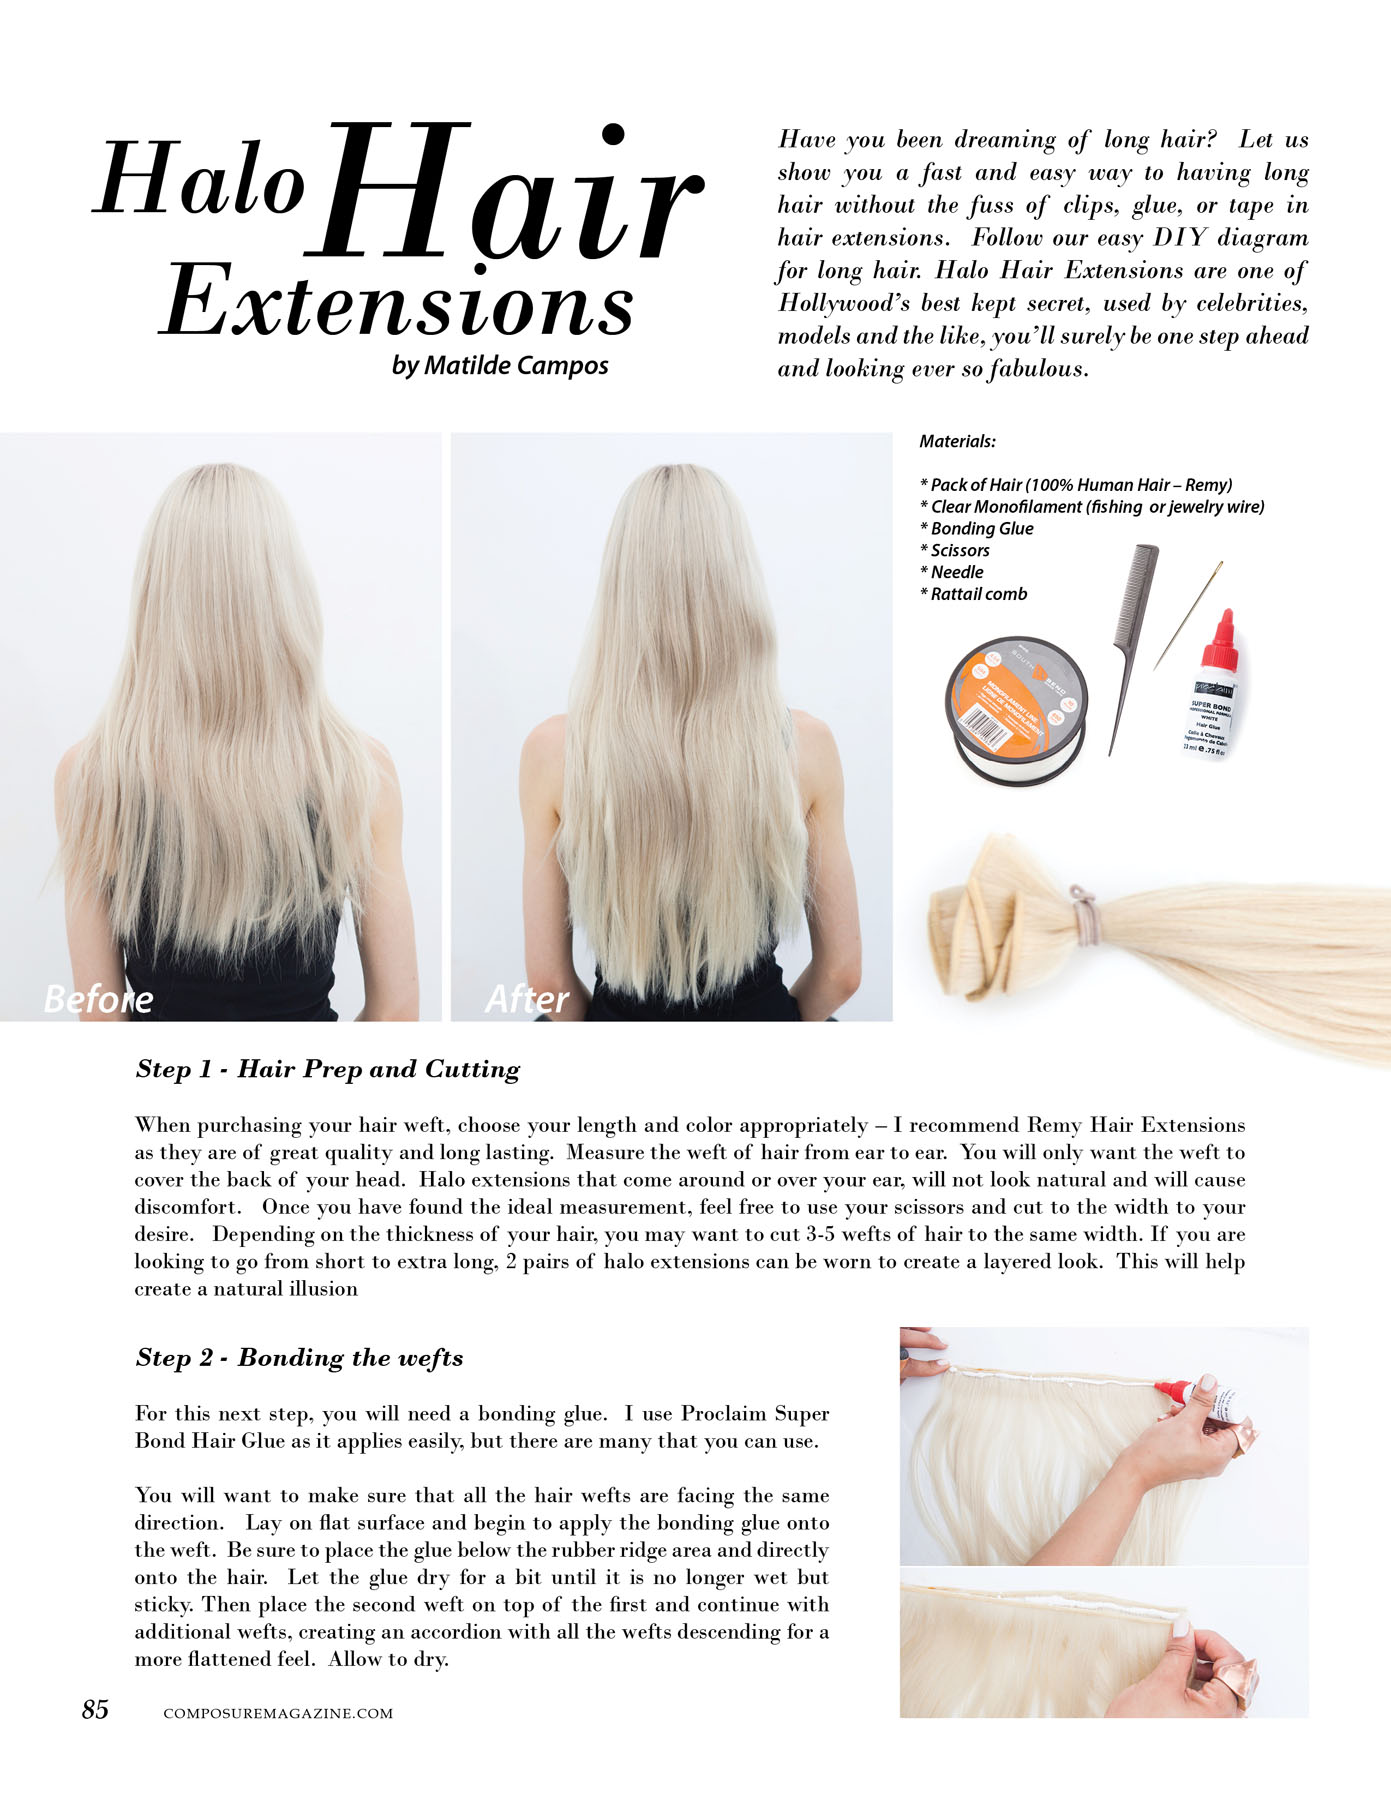 Beauty halo hair extensions composure magazine how to guide for halo hair extensions pmusecretfo Gallery